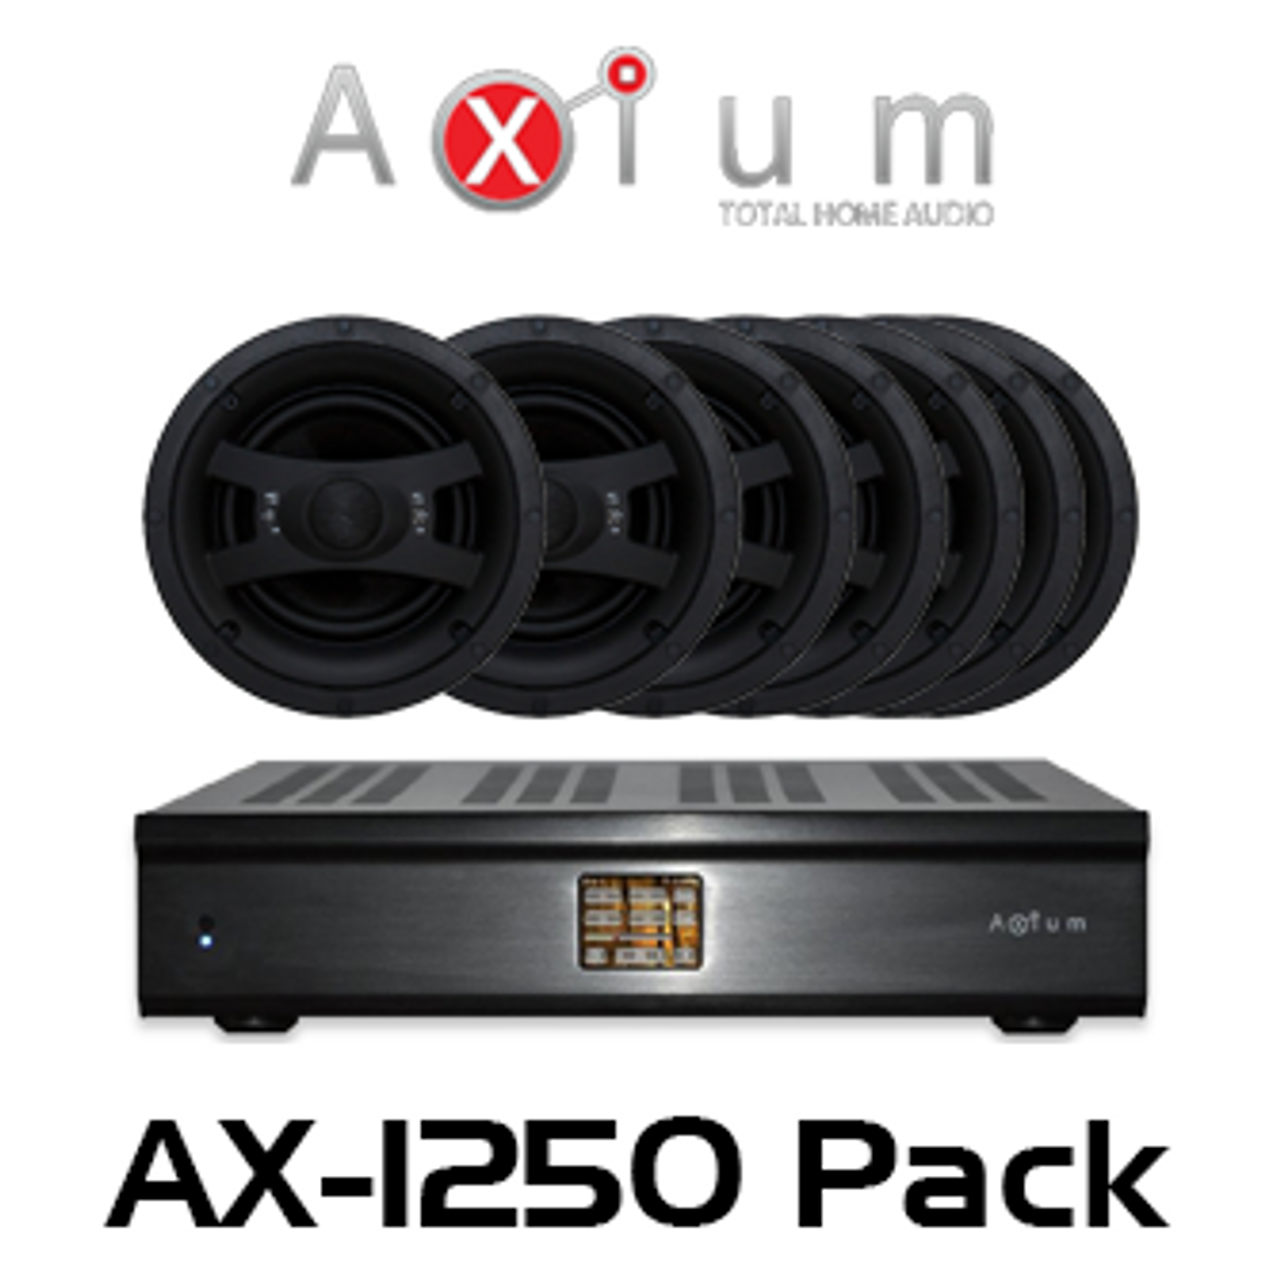 Axium AX-1250 Multi-Zone Amplifier with Edgeless In-Ceiling Package